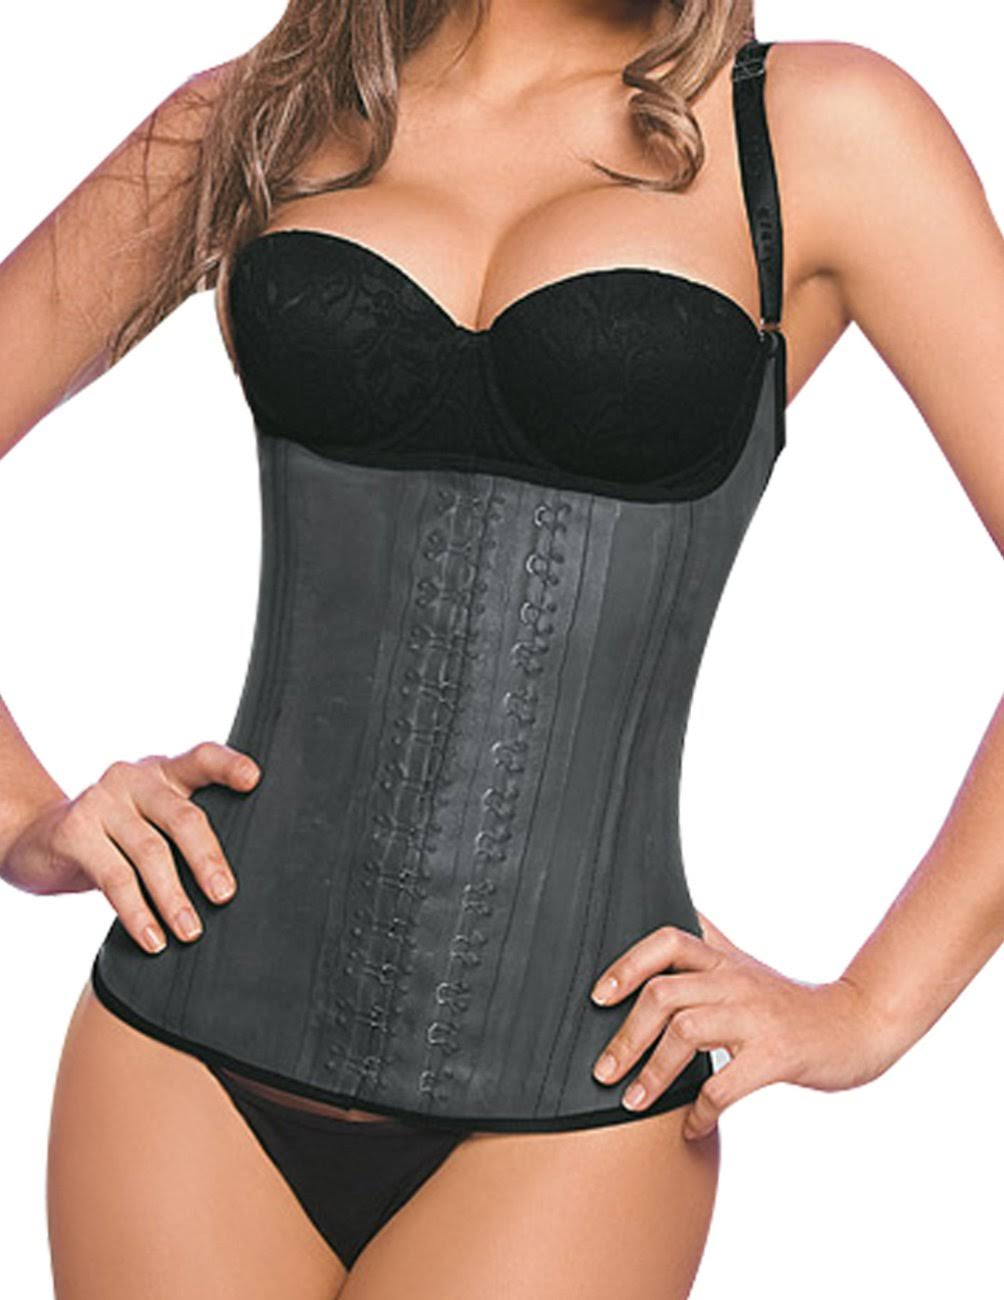 Ann Chery Womens Latex Girdle Body Shaper - Black, XLarge